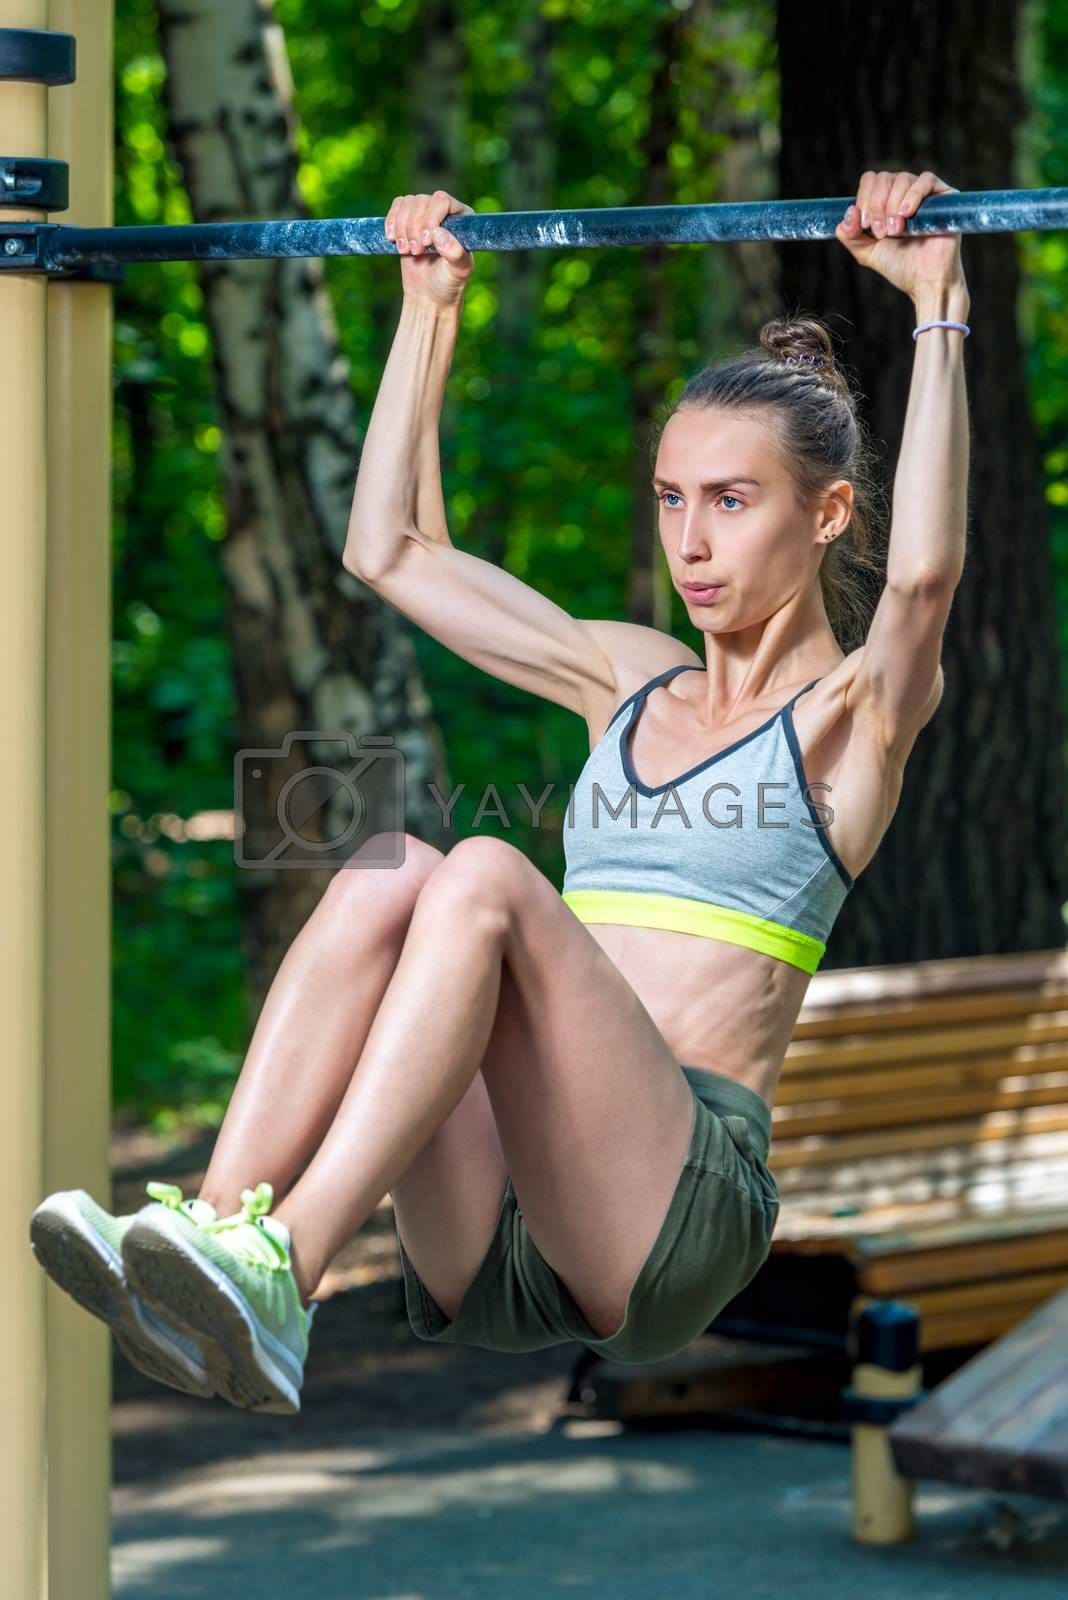 sports woman on the playground doing press exercises by Labunskiy K.